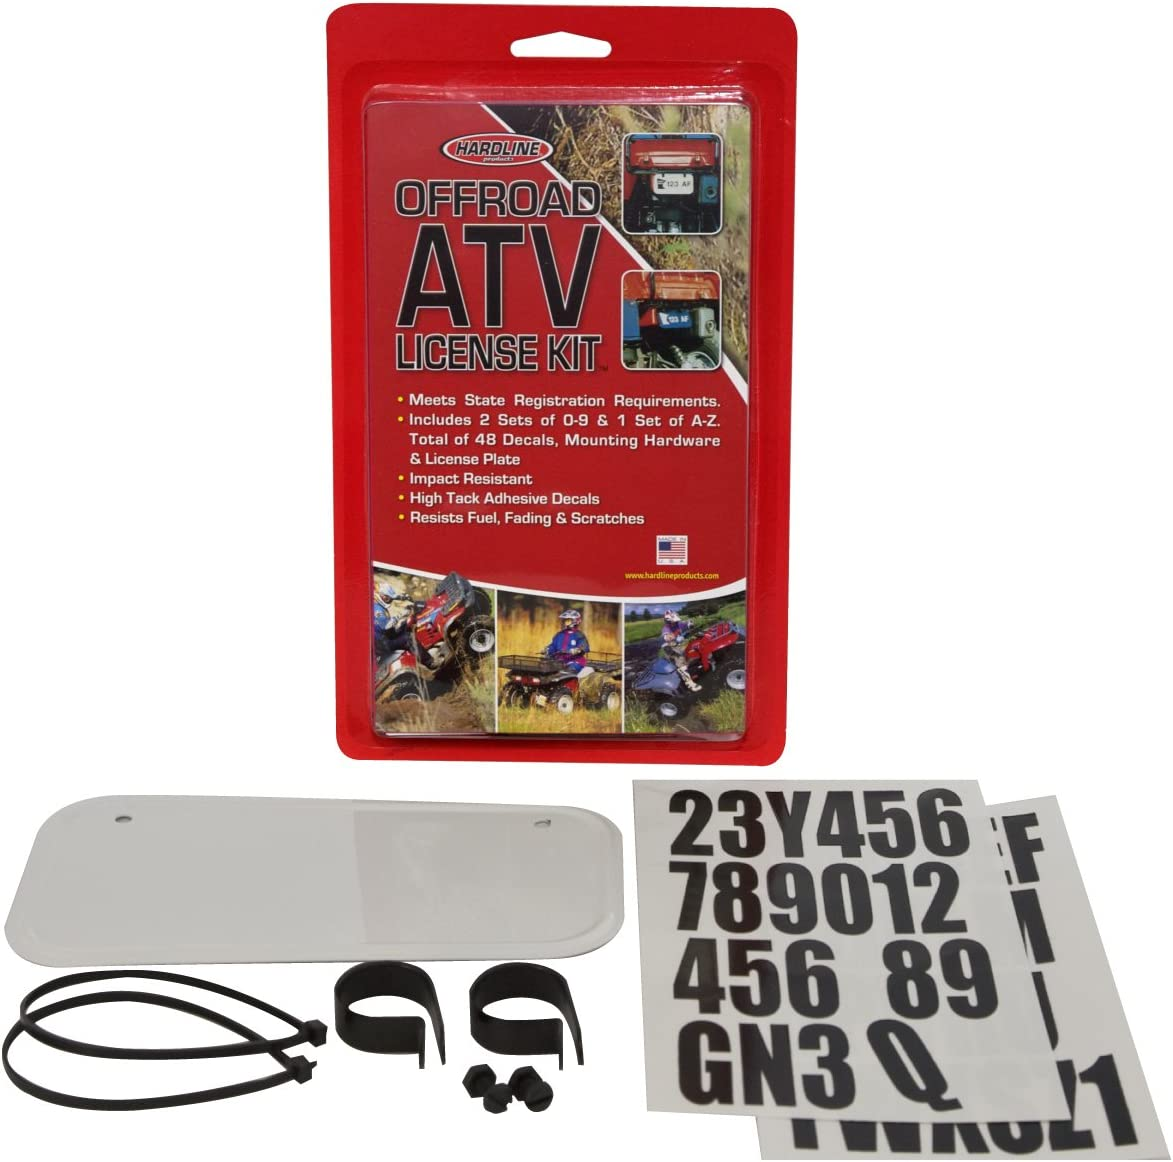 Wisconsin LEGAL License Plate Kit ATV White with black decal kit